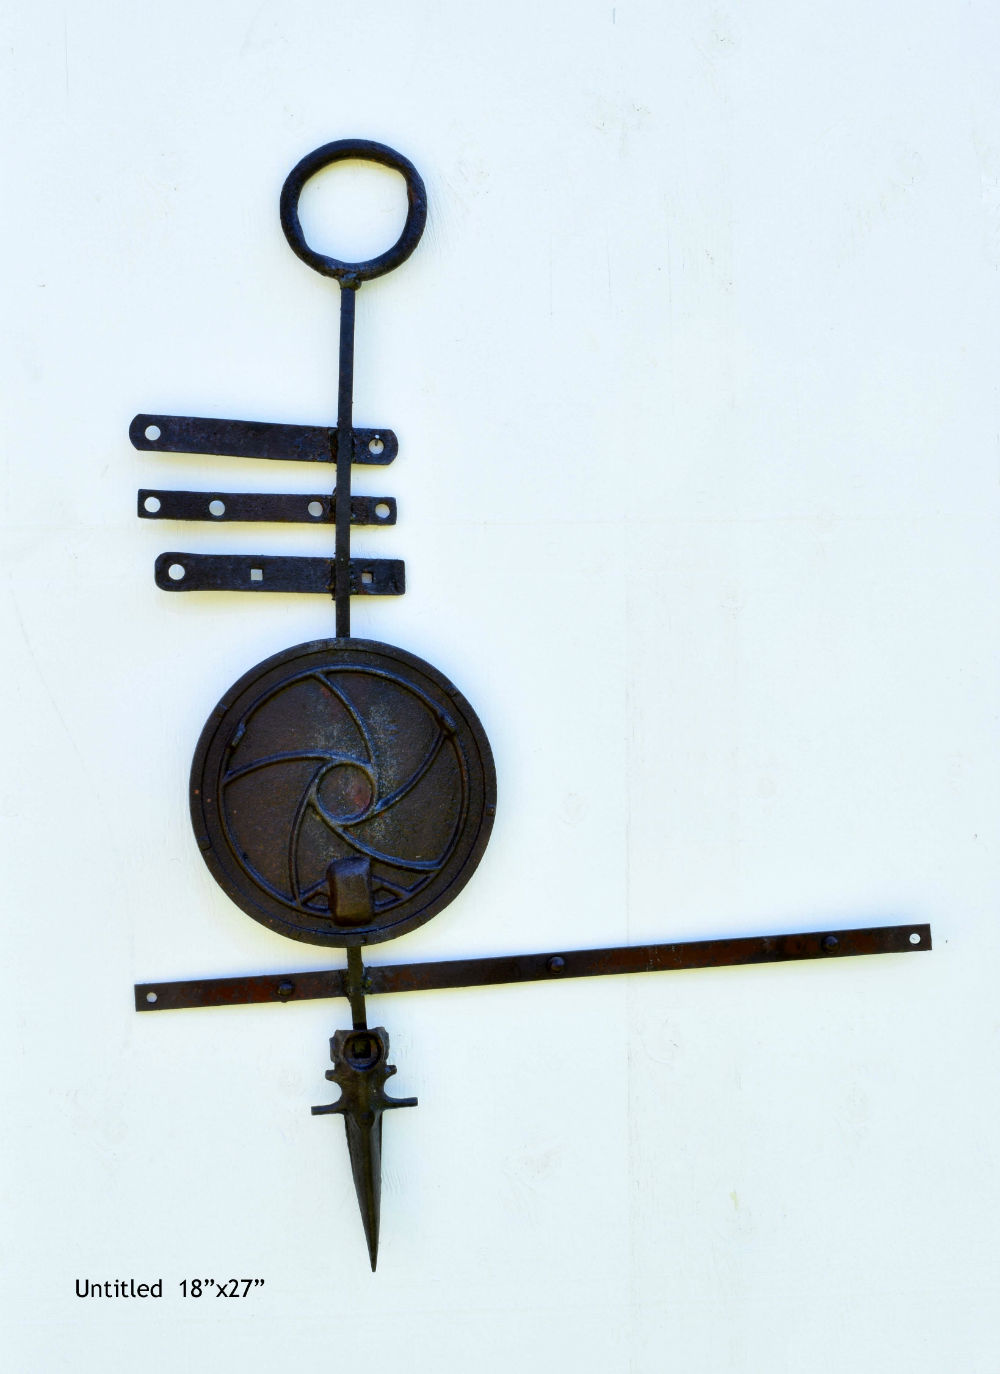 Walden9_opt.jpg